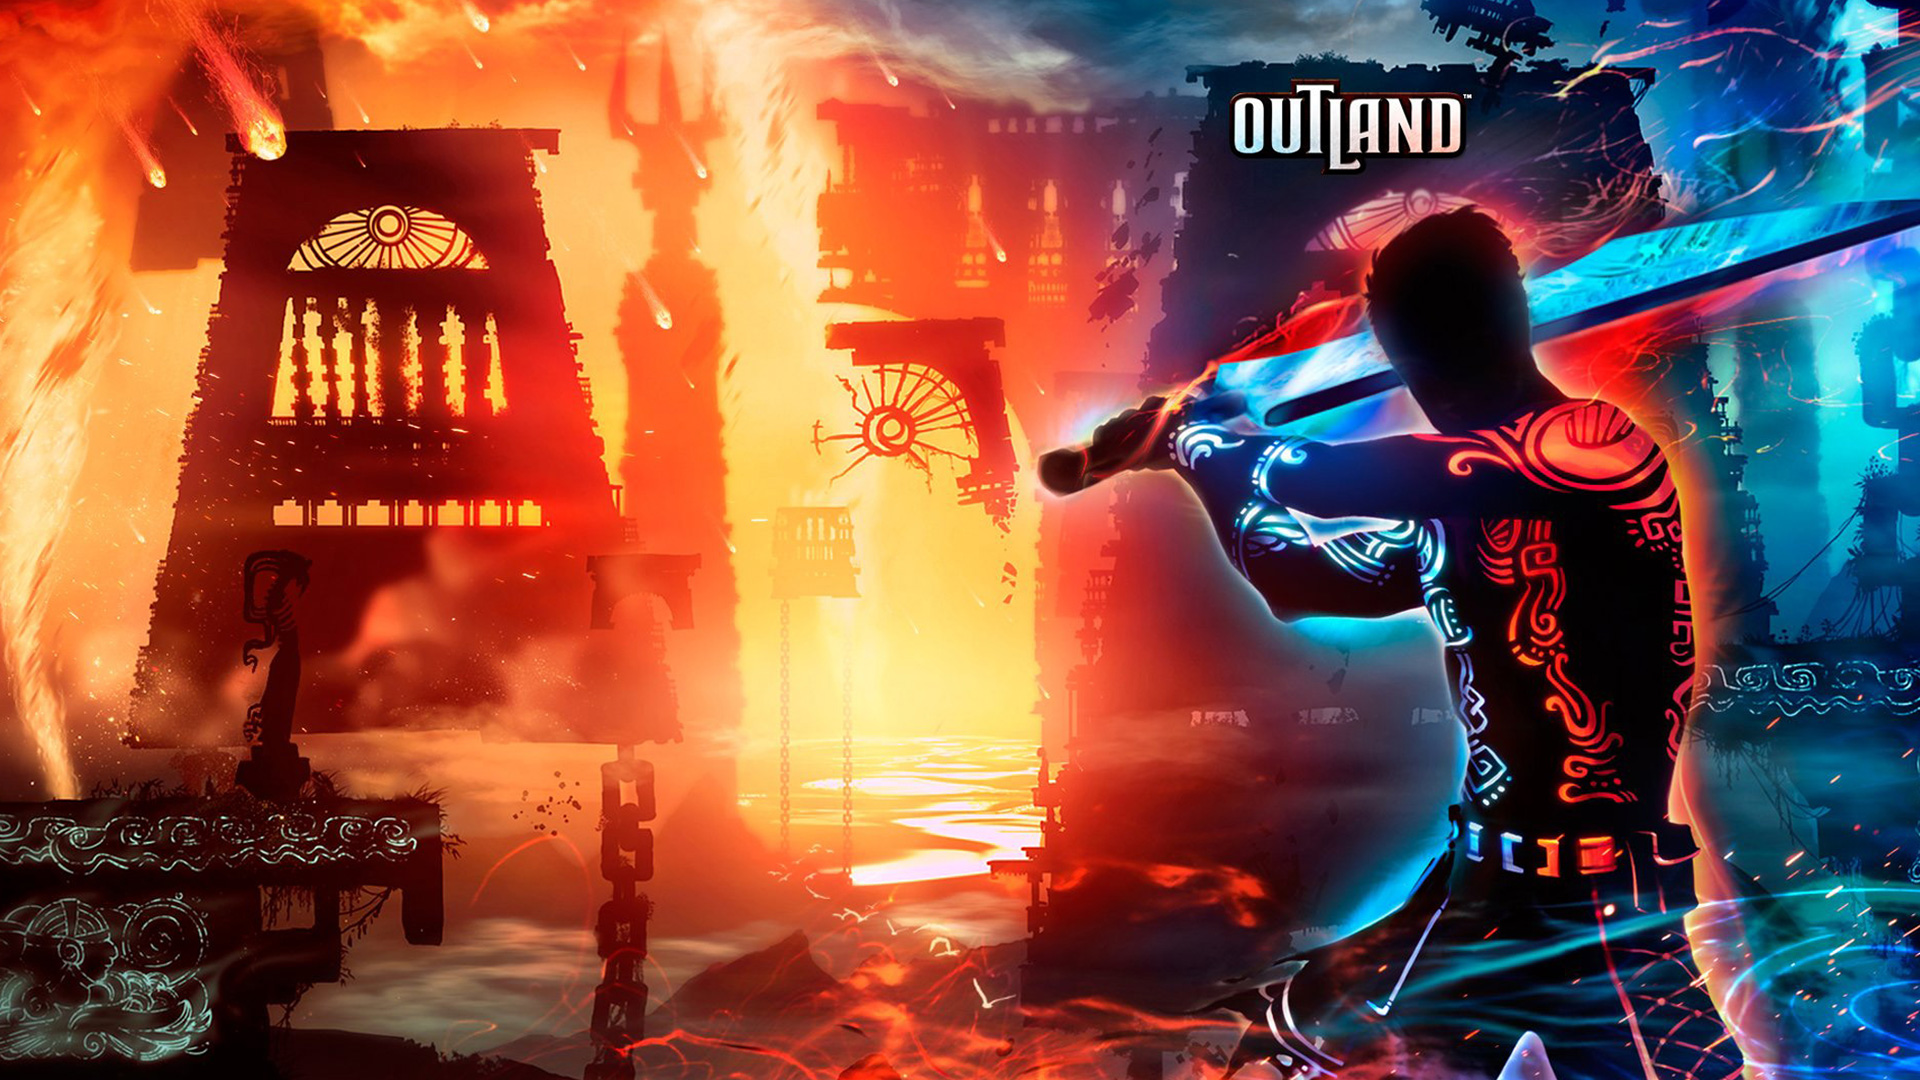 Outland Wallpaper in 1920x1080